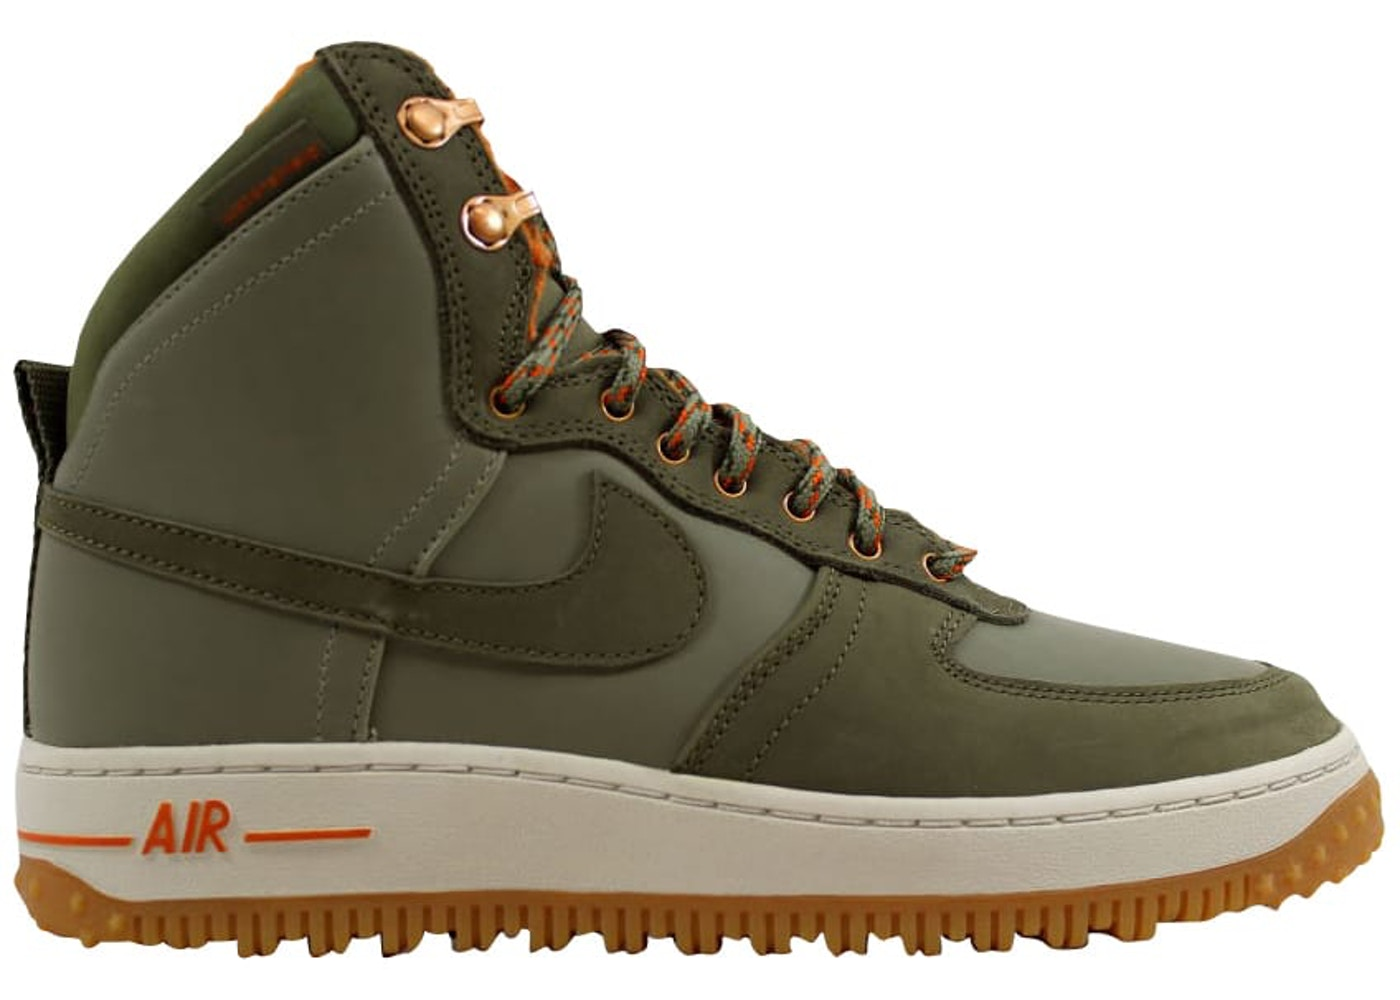 new products 31294 6f13e Air Force 1 Hi Decon Military Boot Silver Sage - 537889-300